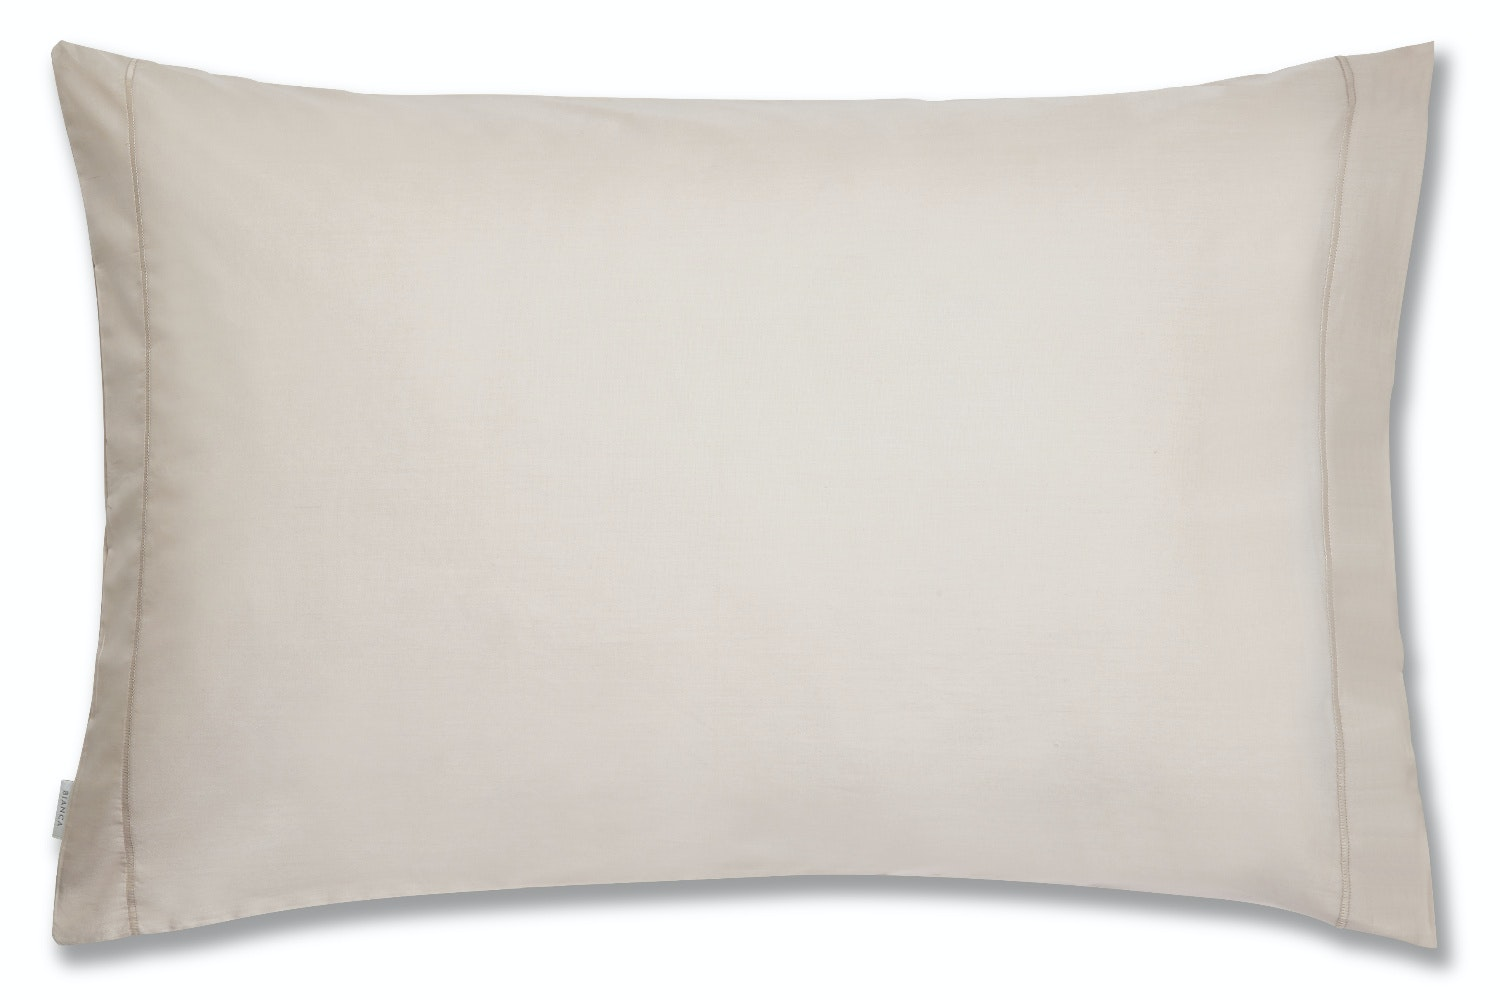 Cotton Soft Housewife Pillowcase | Neutral